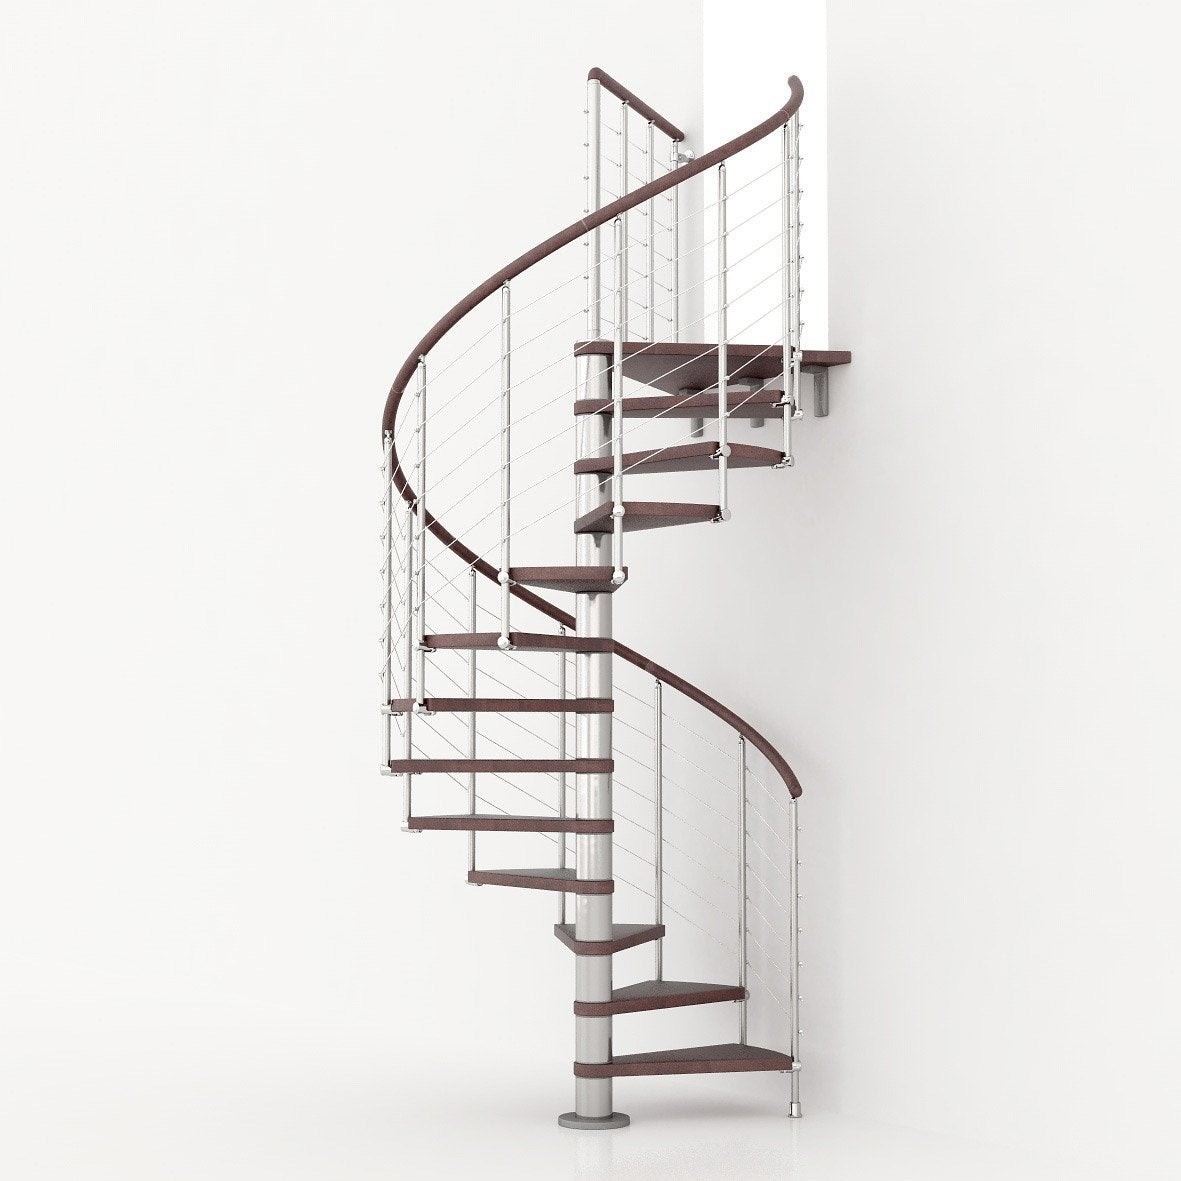 Escalier colima on rond ring structure m tal marche bois - Escalier helicoidal leroy merlin ...